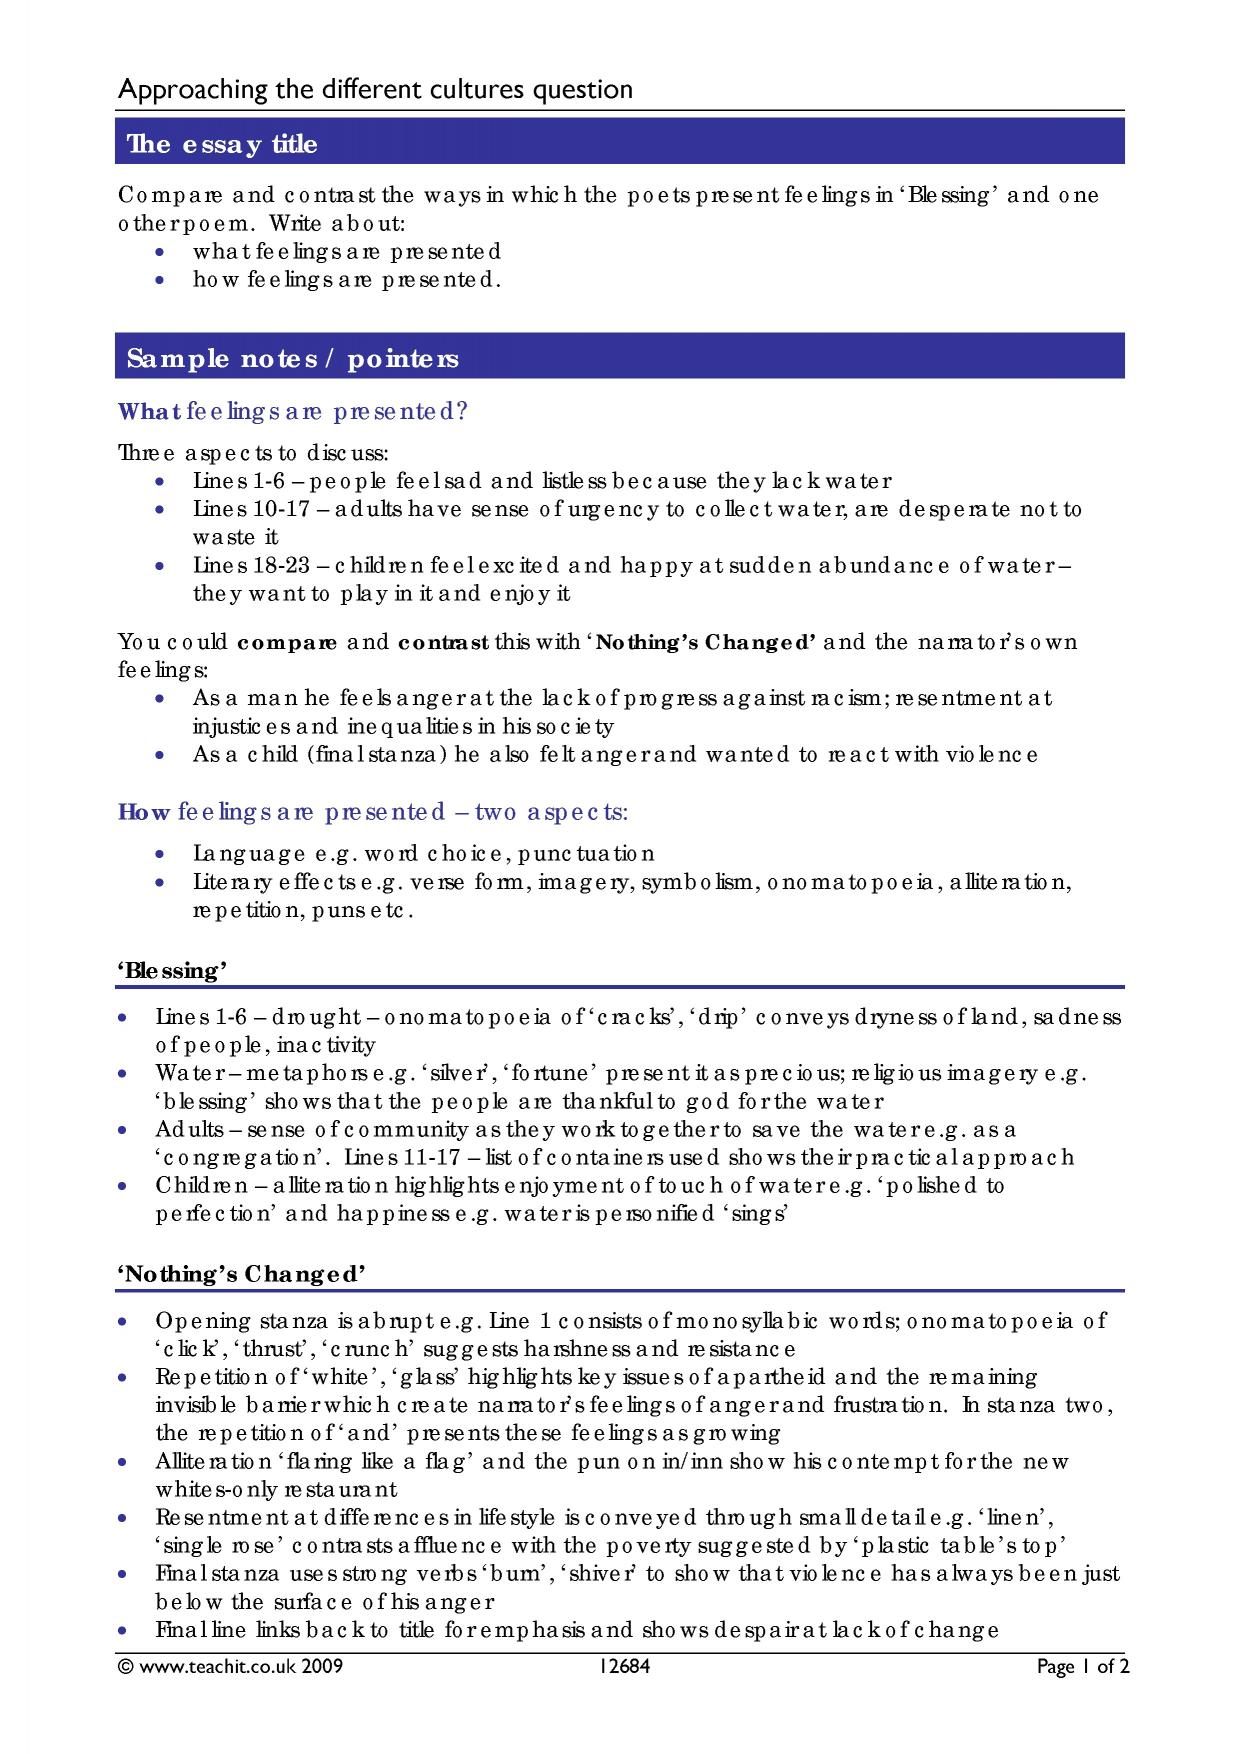 poems different cultures essay questions